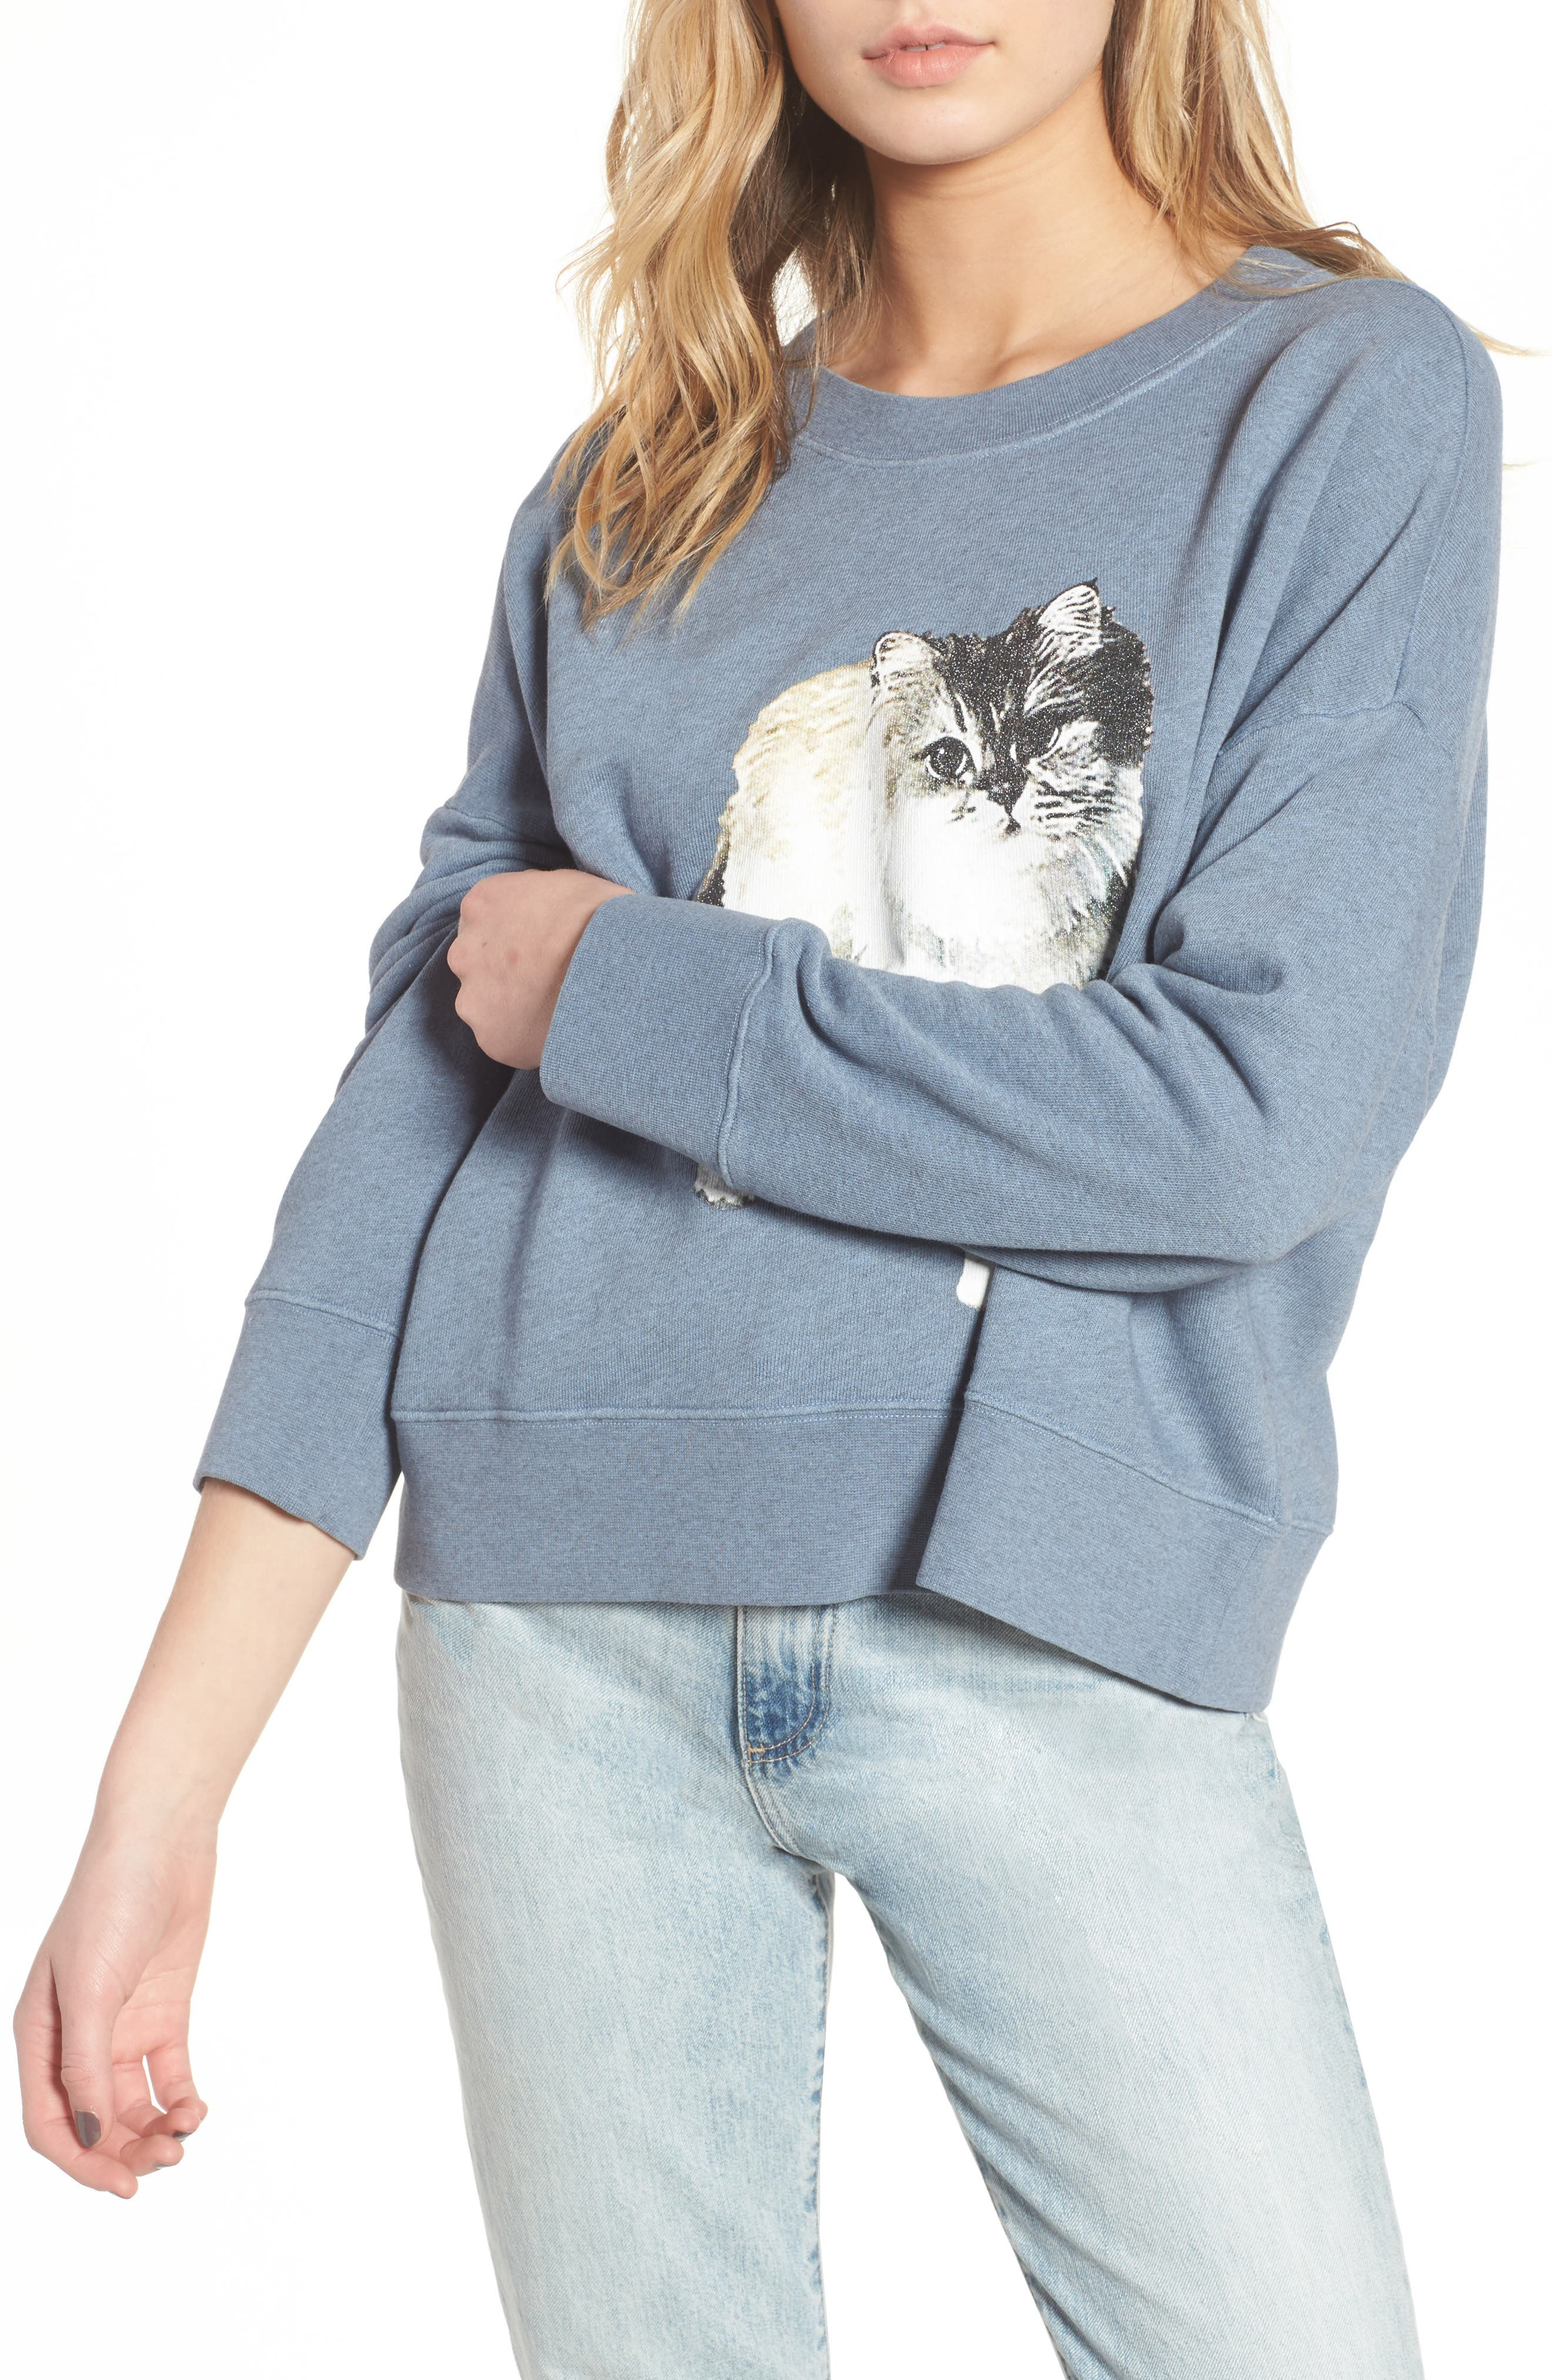 Kyoto Sweatshirt,                         Main,                         color, Blue